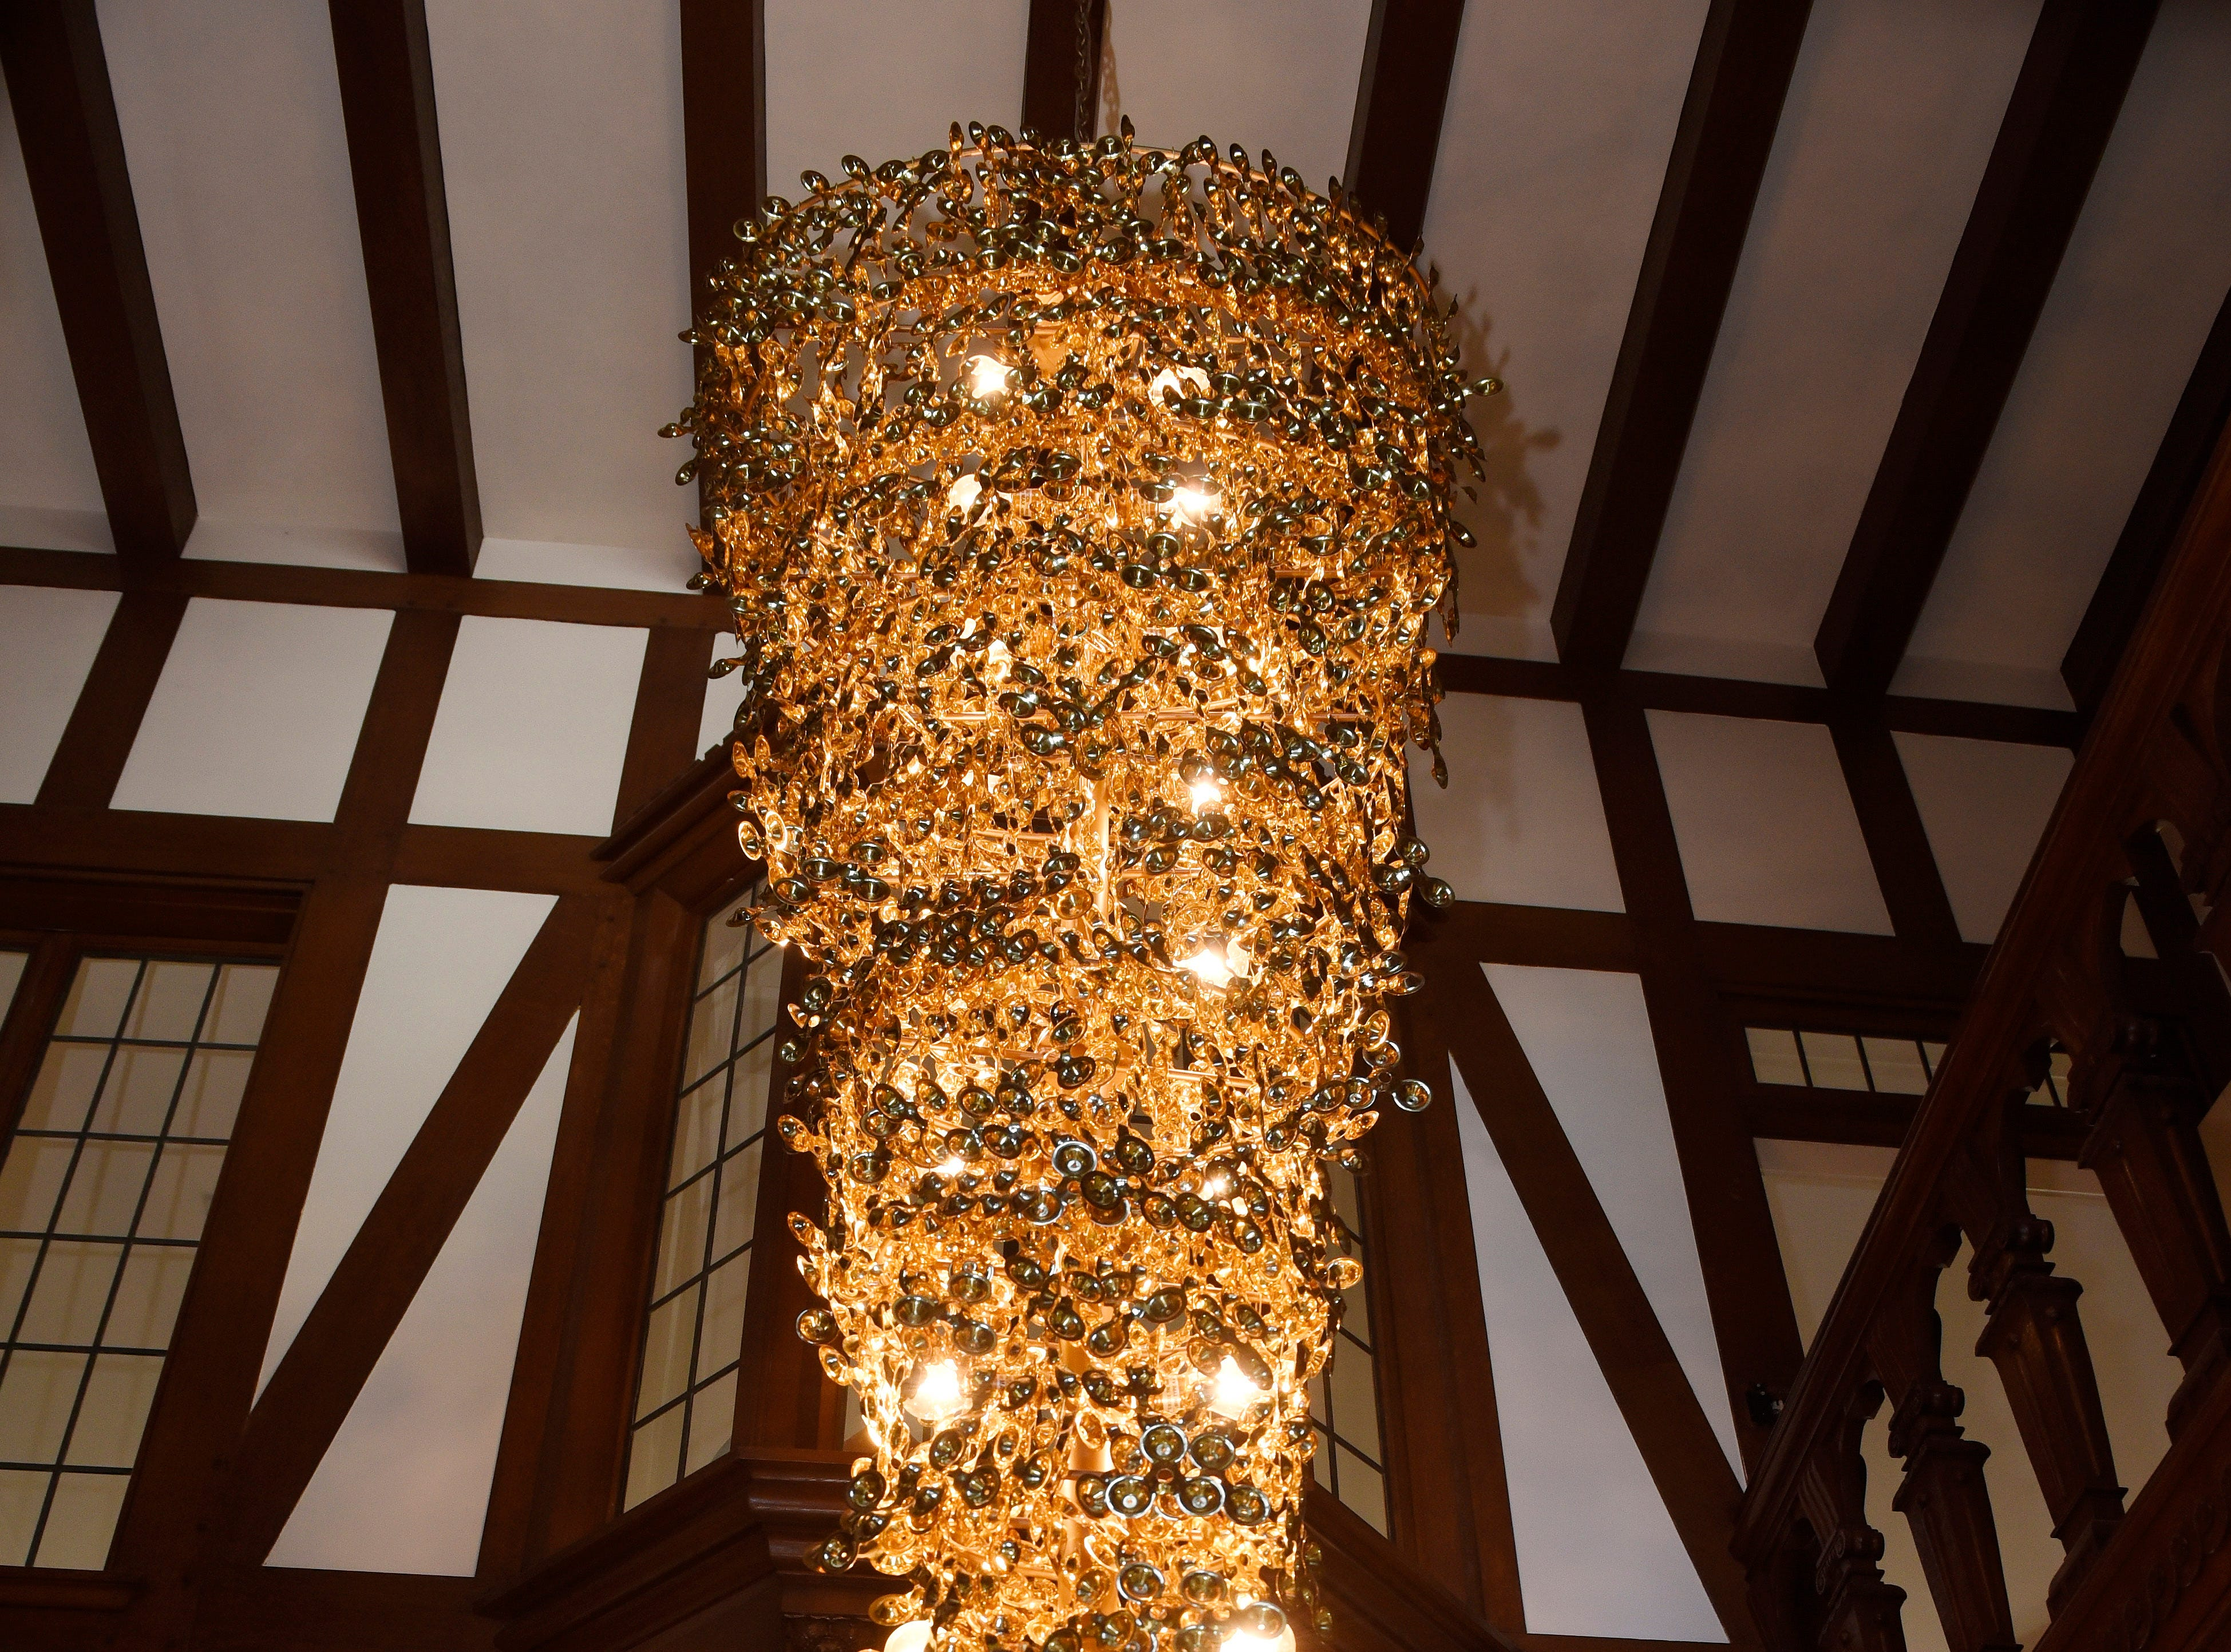 A light fixture in the main entrance of the foyer at the Fisher mansion.